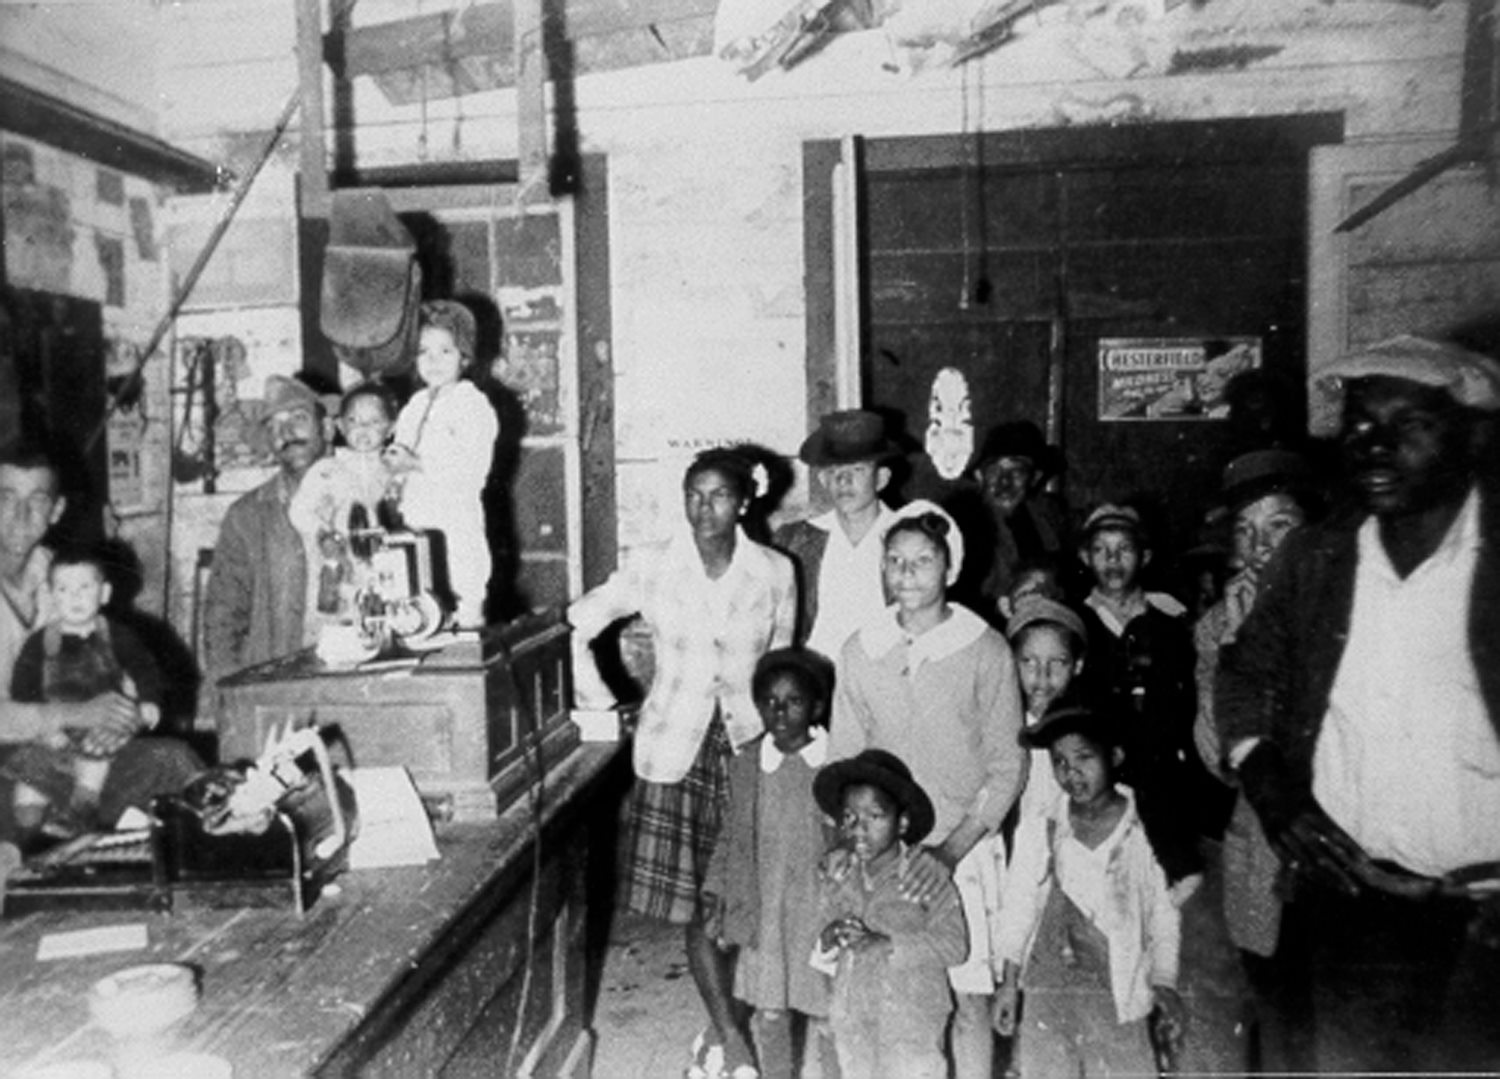 A group of adults and children stand inside the Magnolia Plantation Store in the 1940s. A movie projector stand on the store counter.